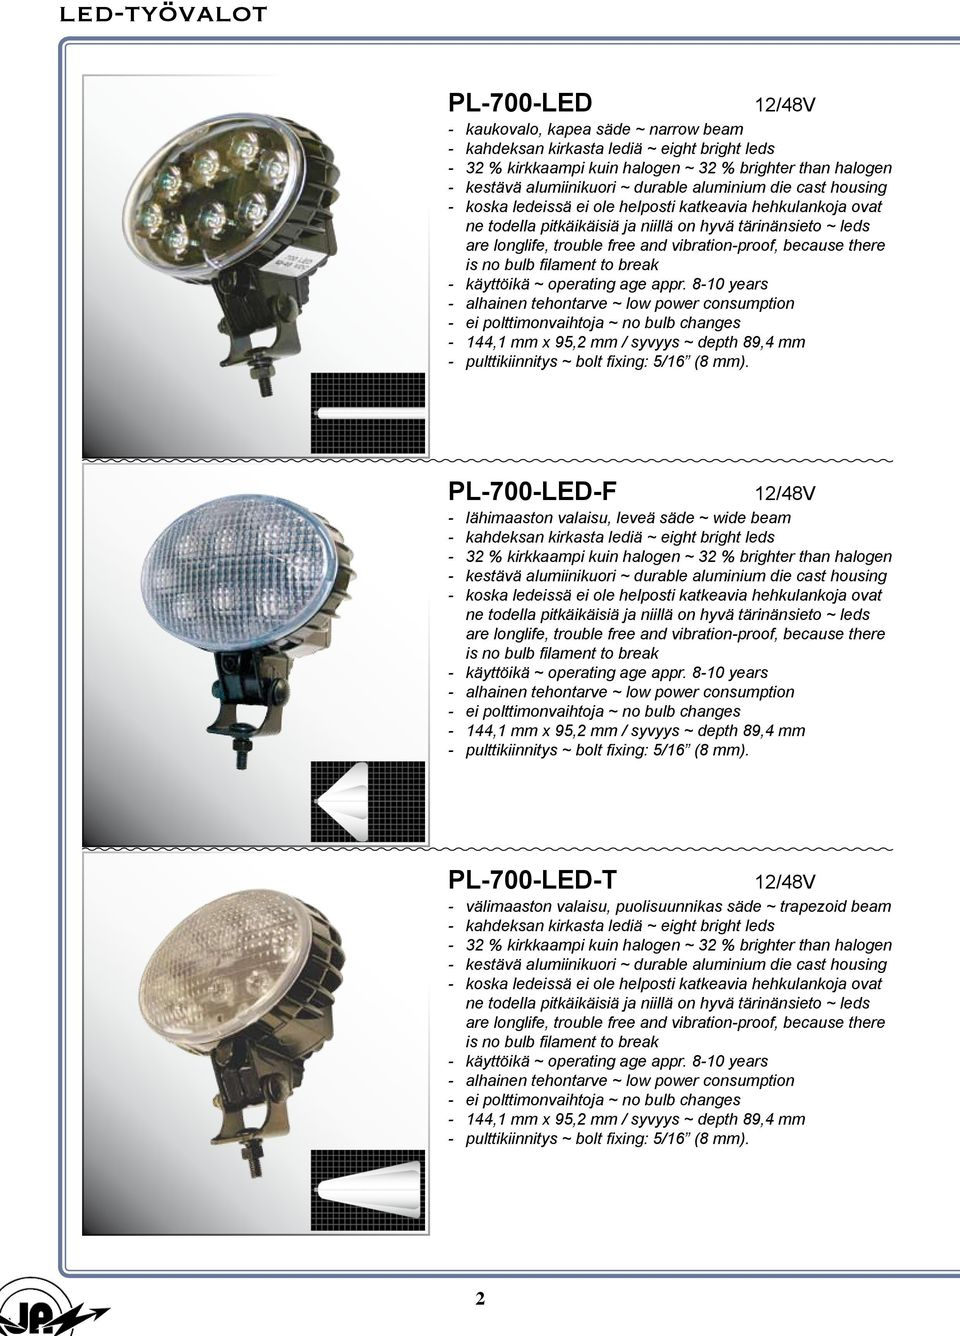 vibration-proof, because there is no bulb filament to break - käyttöikä ~ operating age appr.